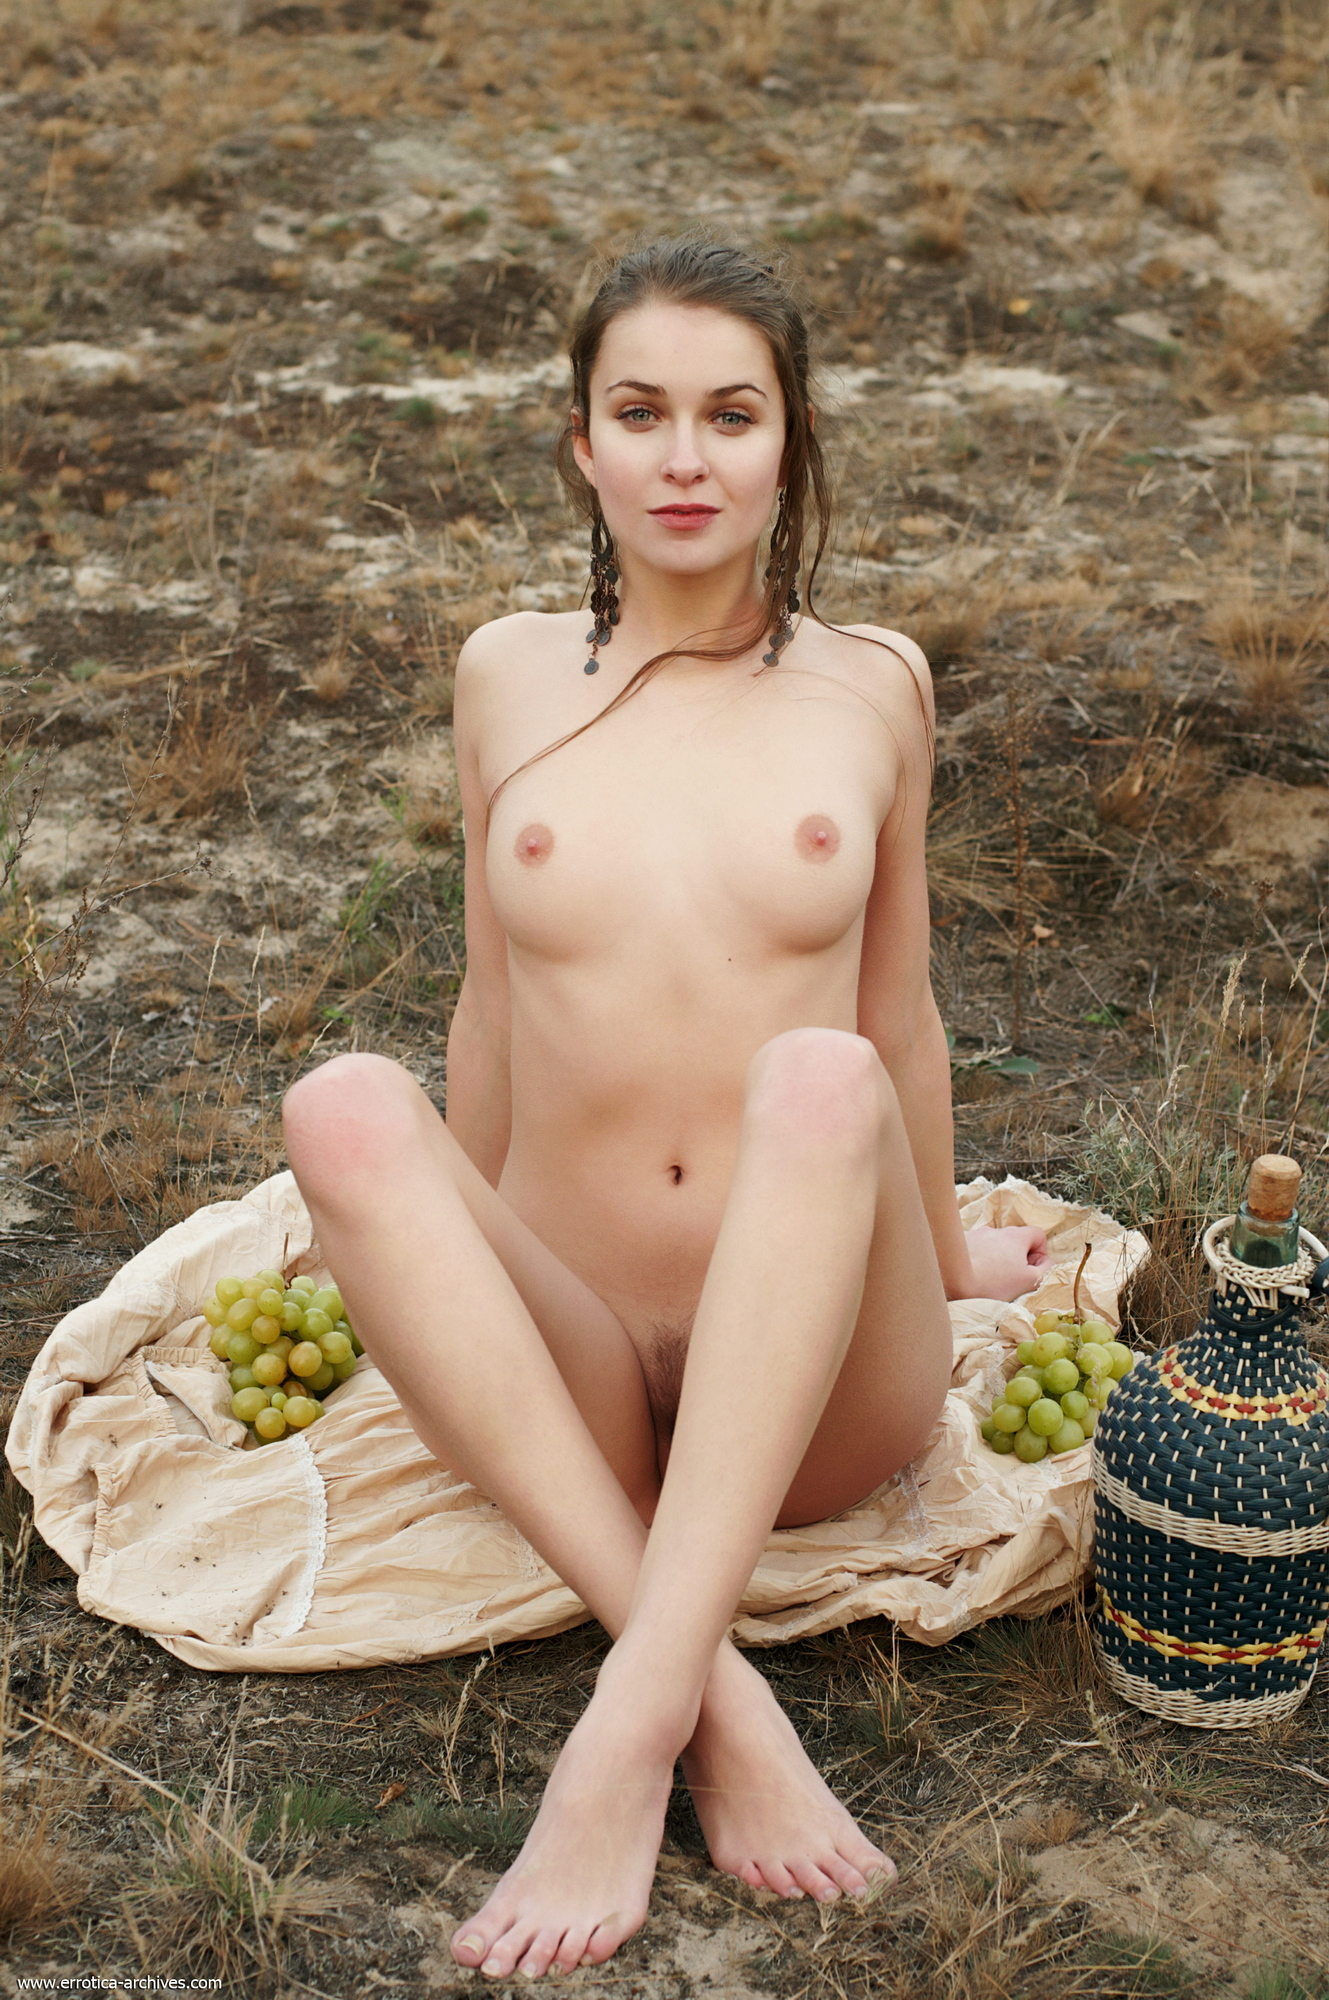 milana-naked-jug-wine-grapes-outdoor-errotica-archives-24